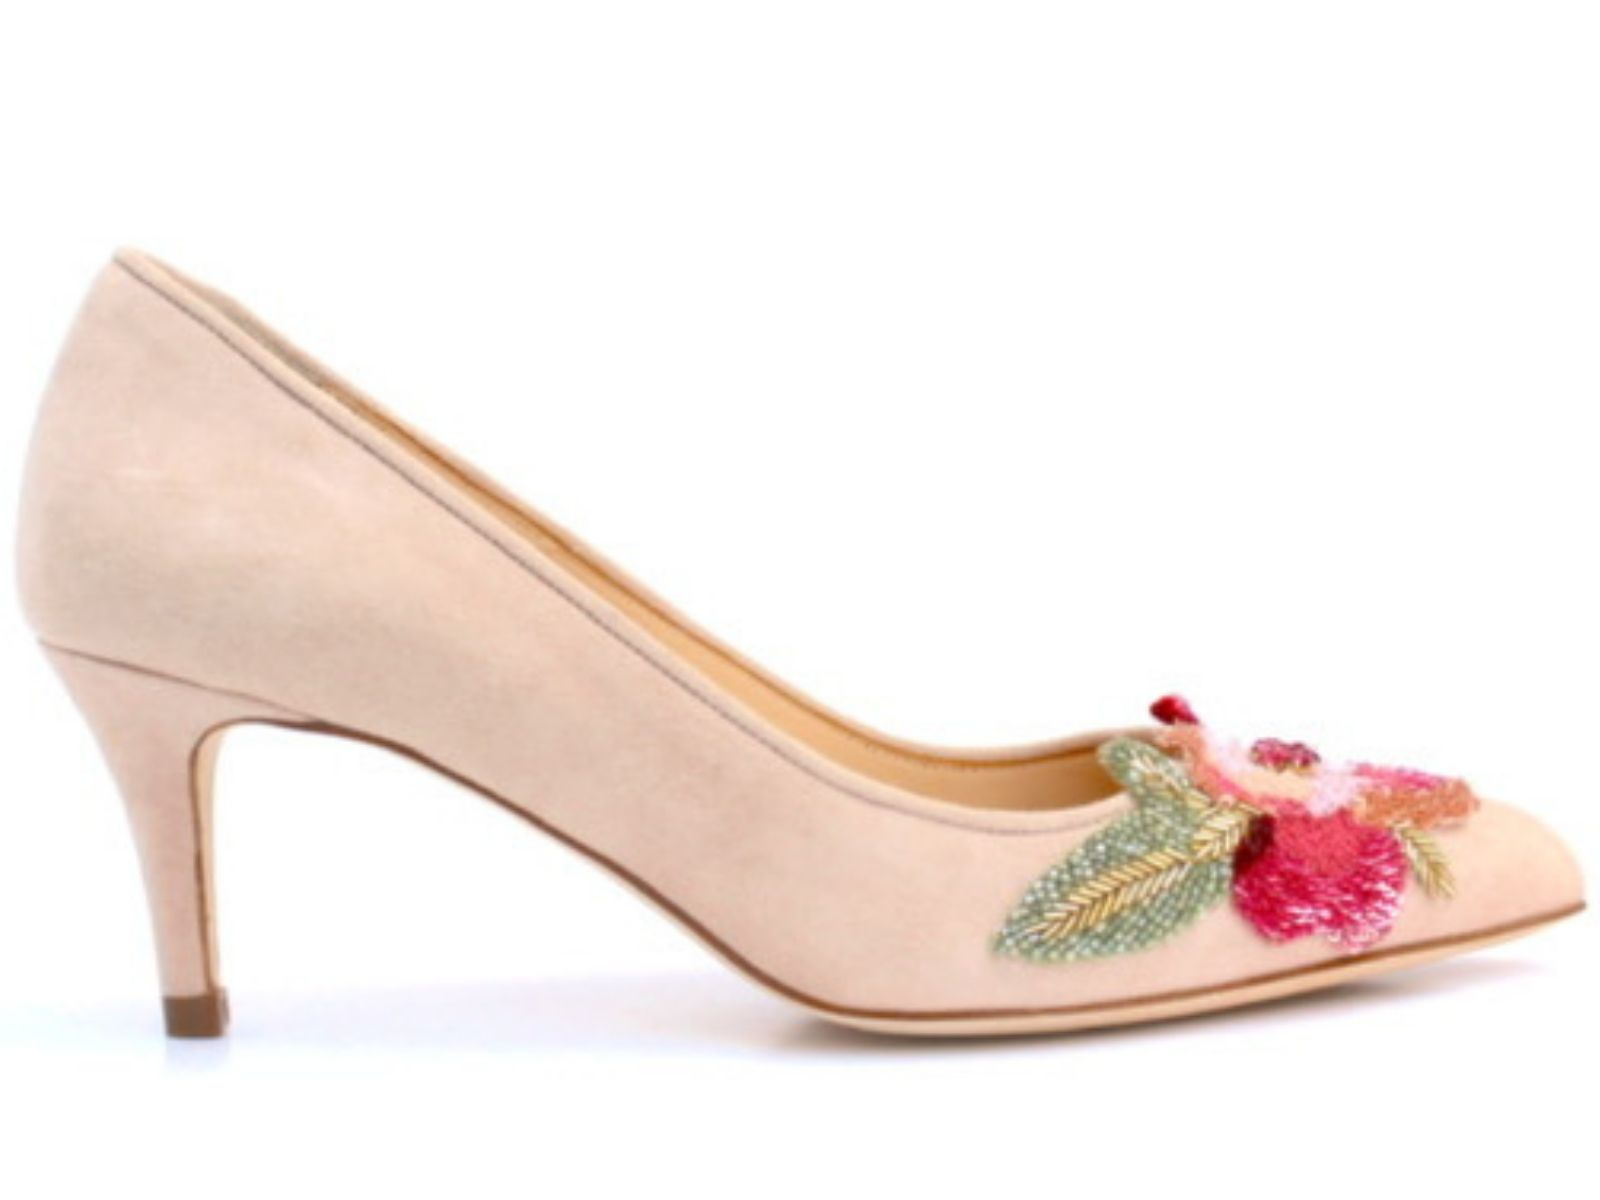 Dianne Hassall wedding shoes with kitten heel and toe embellishment